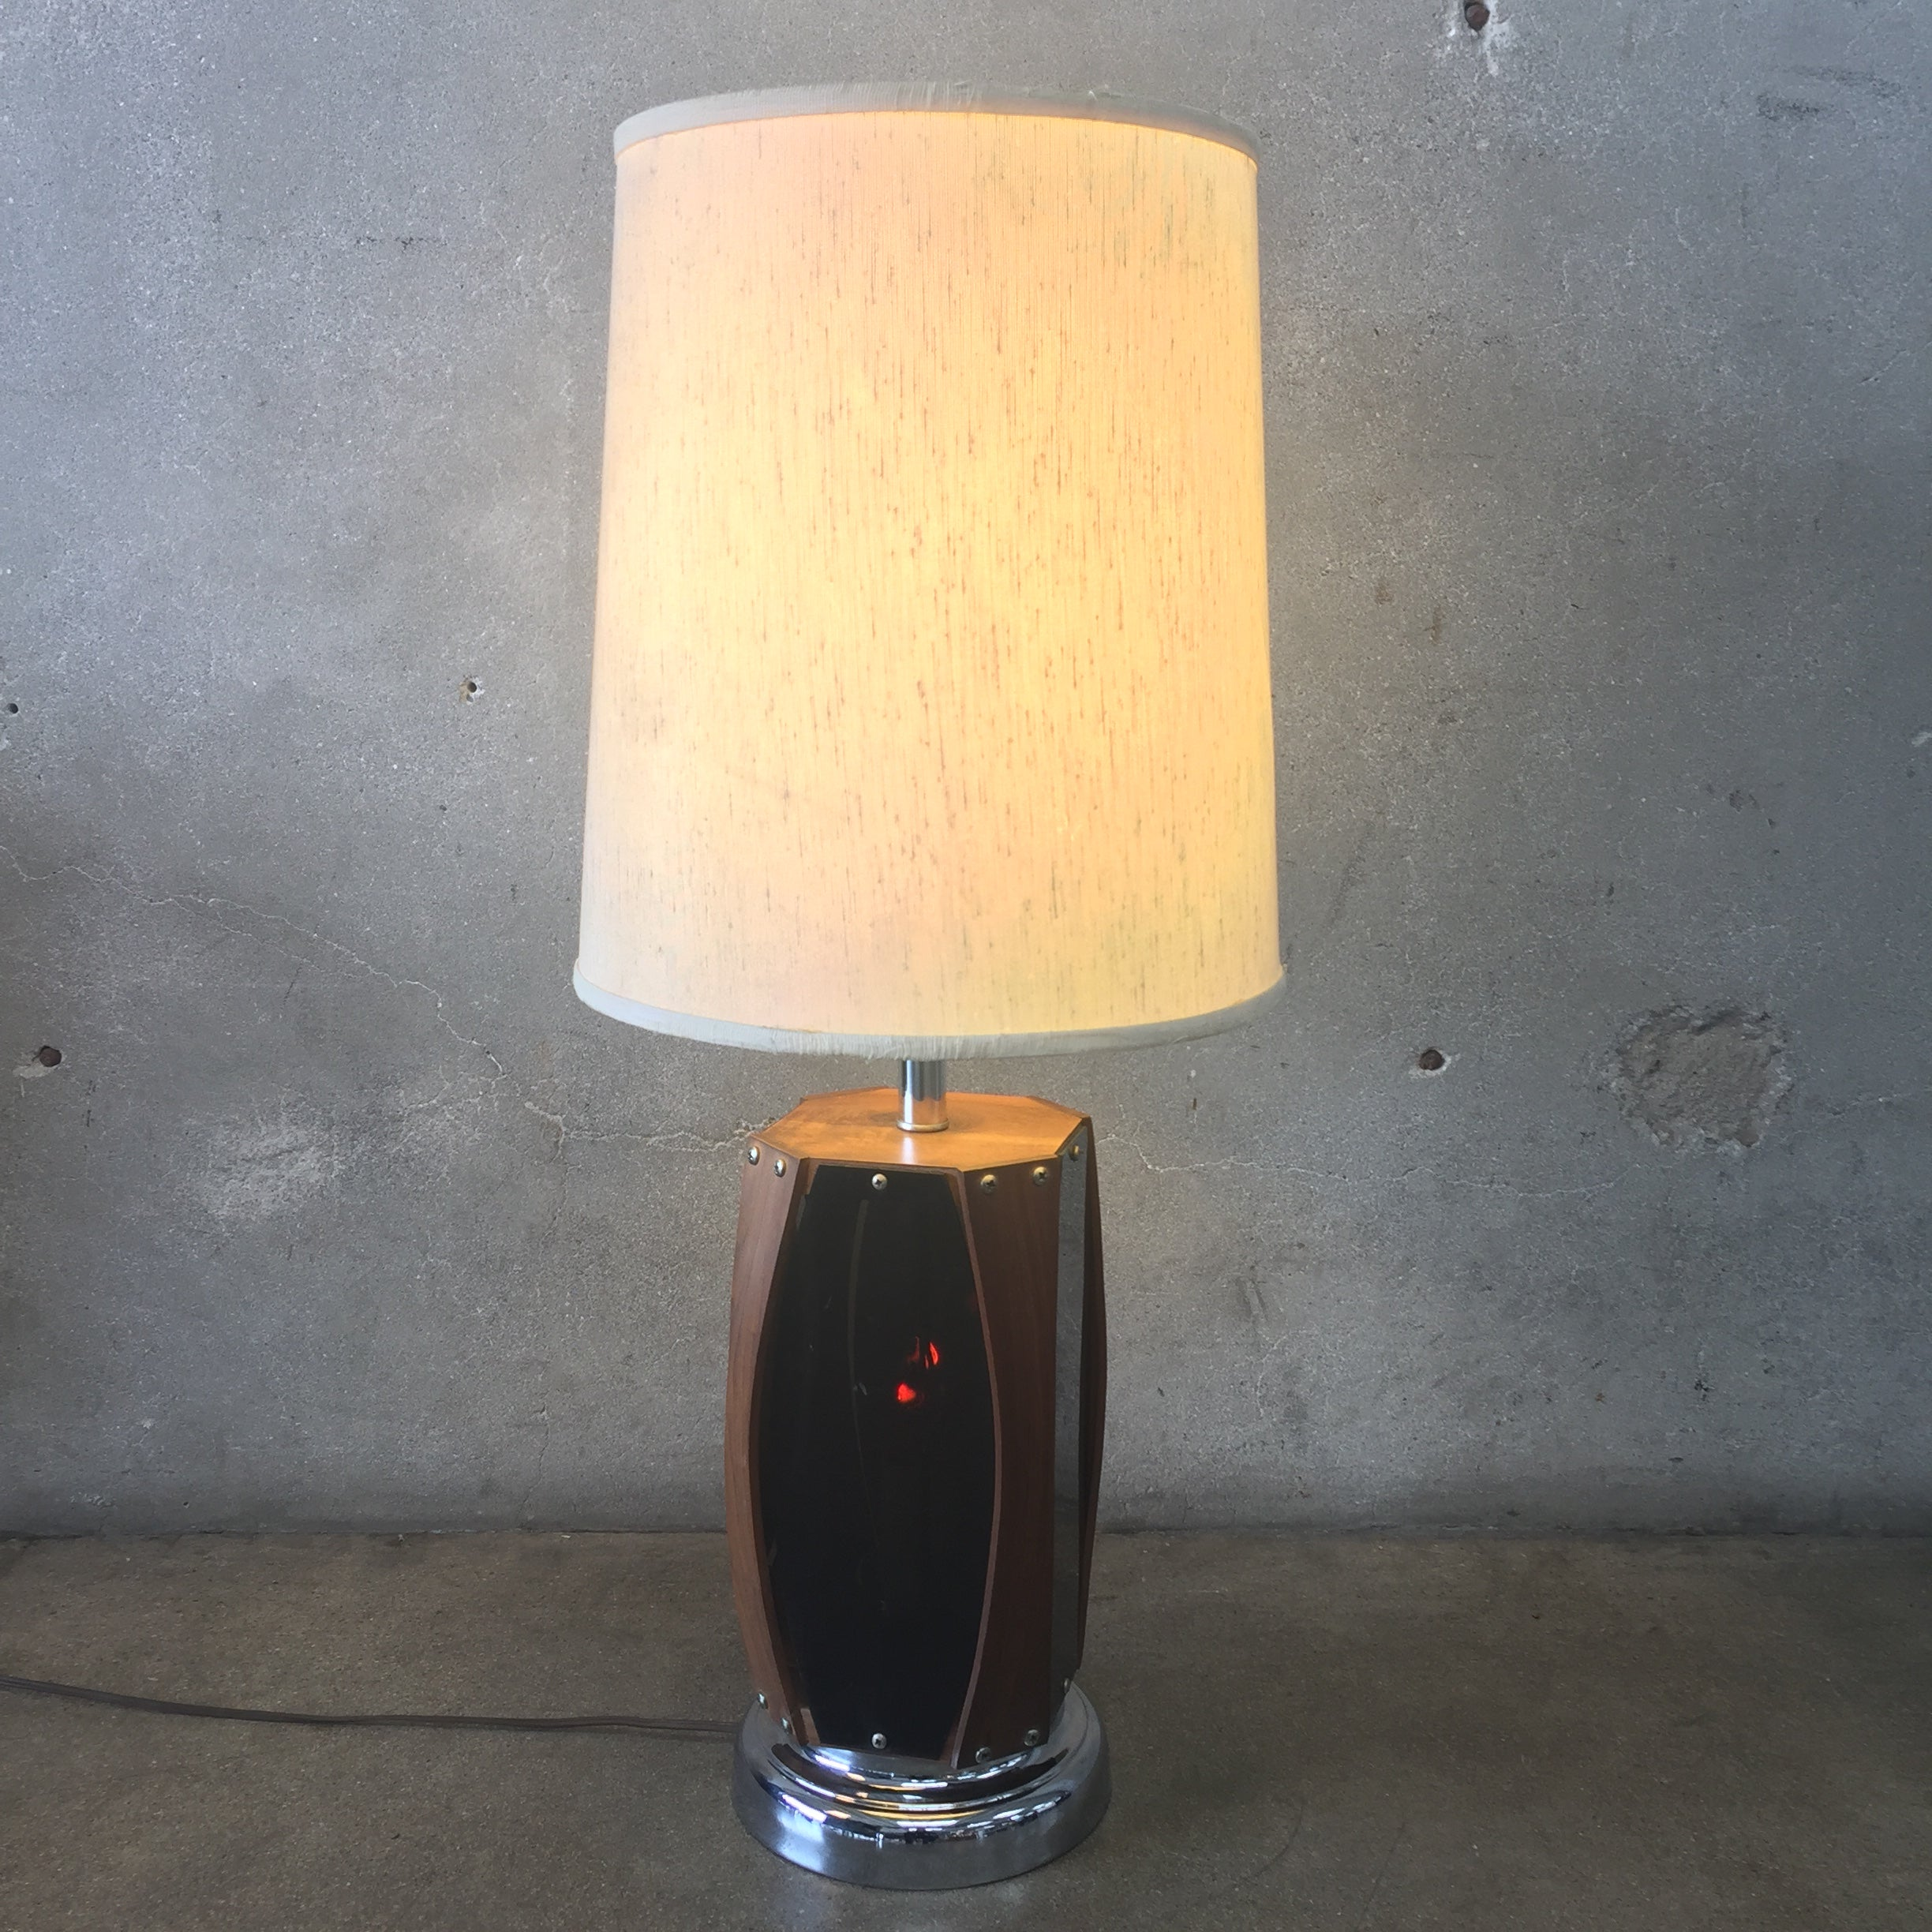 Mid century modern walnut table lamp urbanamericana mid century modern walnut table lamp geotapseo Image collections